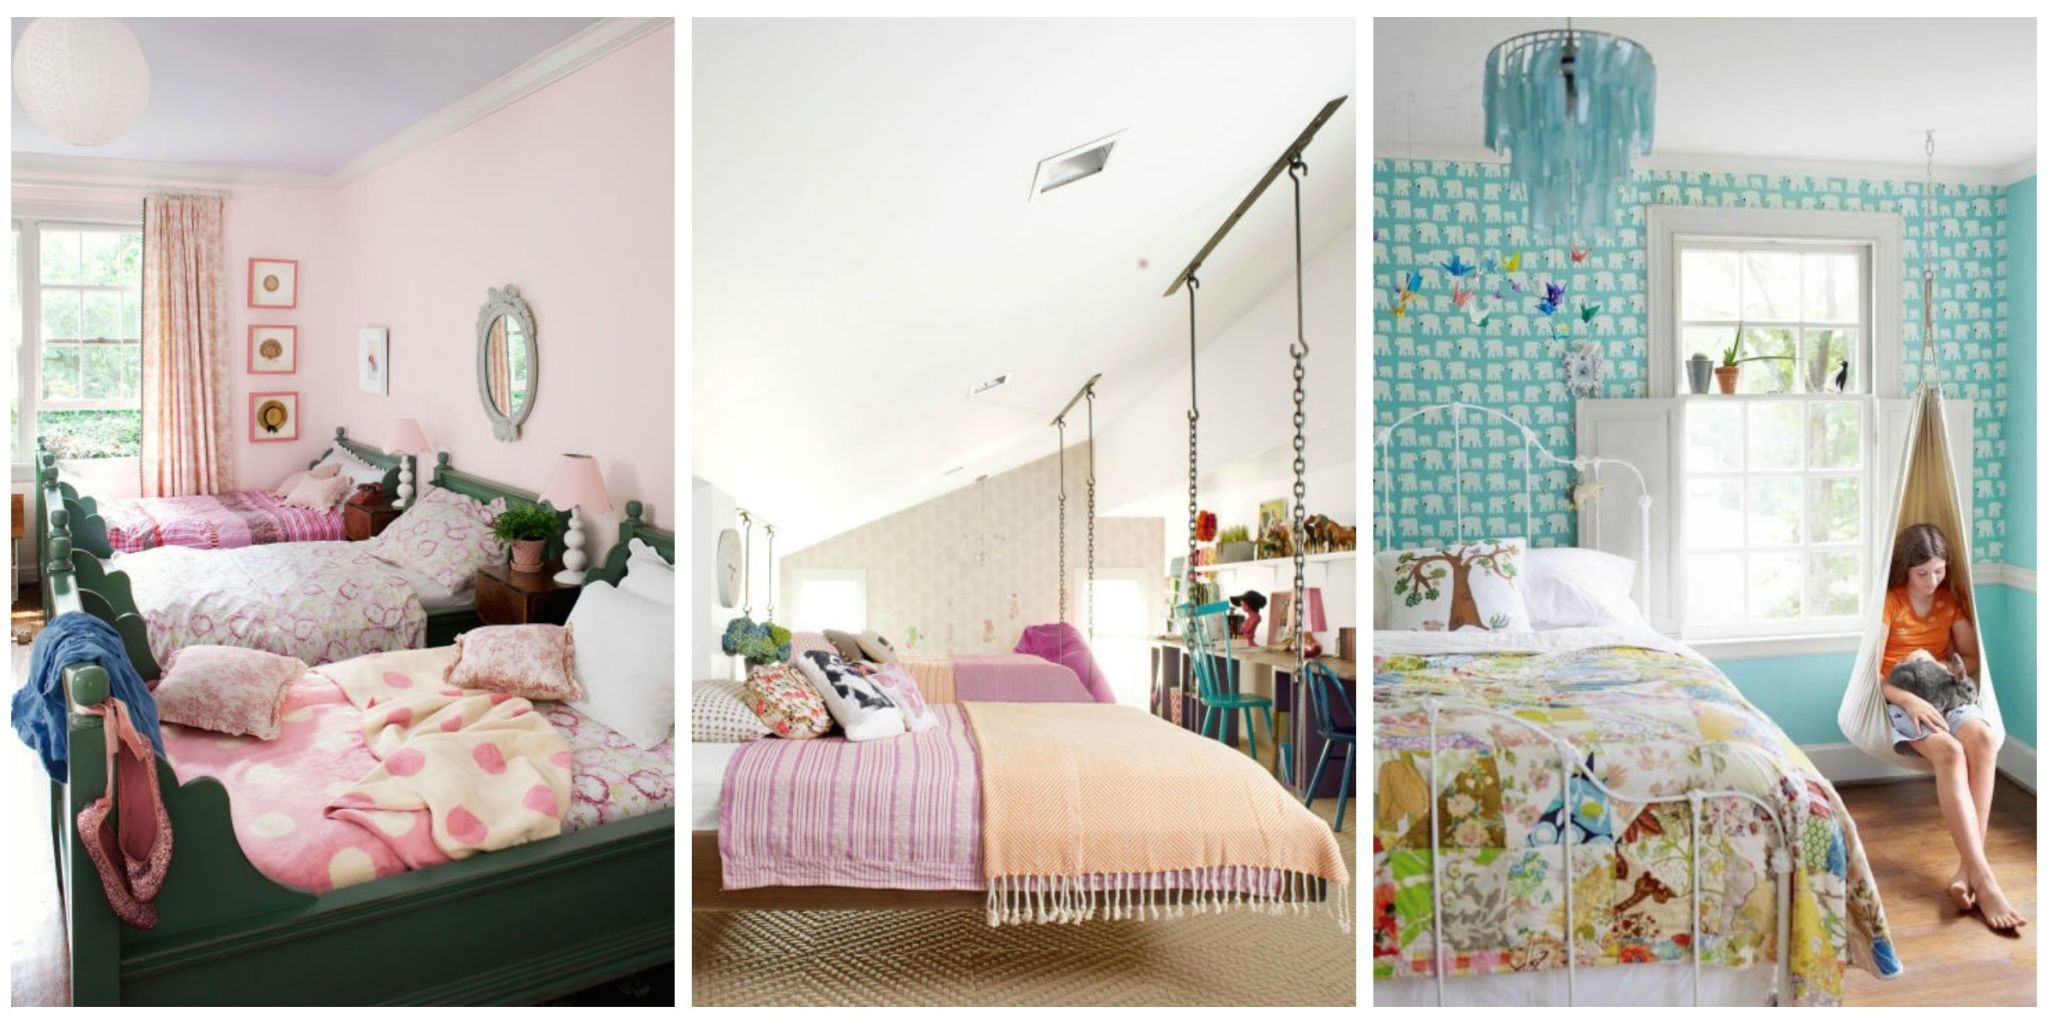 Nice Your Daughter Will Love A Room Filled With Color, Patterns, And Cute  Accessories! Click Through To Find Oh So Pretty Bedroom Decorating Ideas  For Girls Of ...